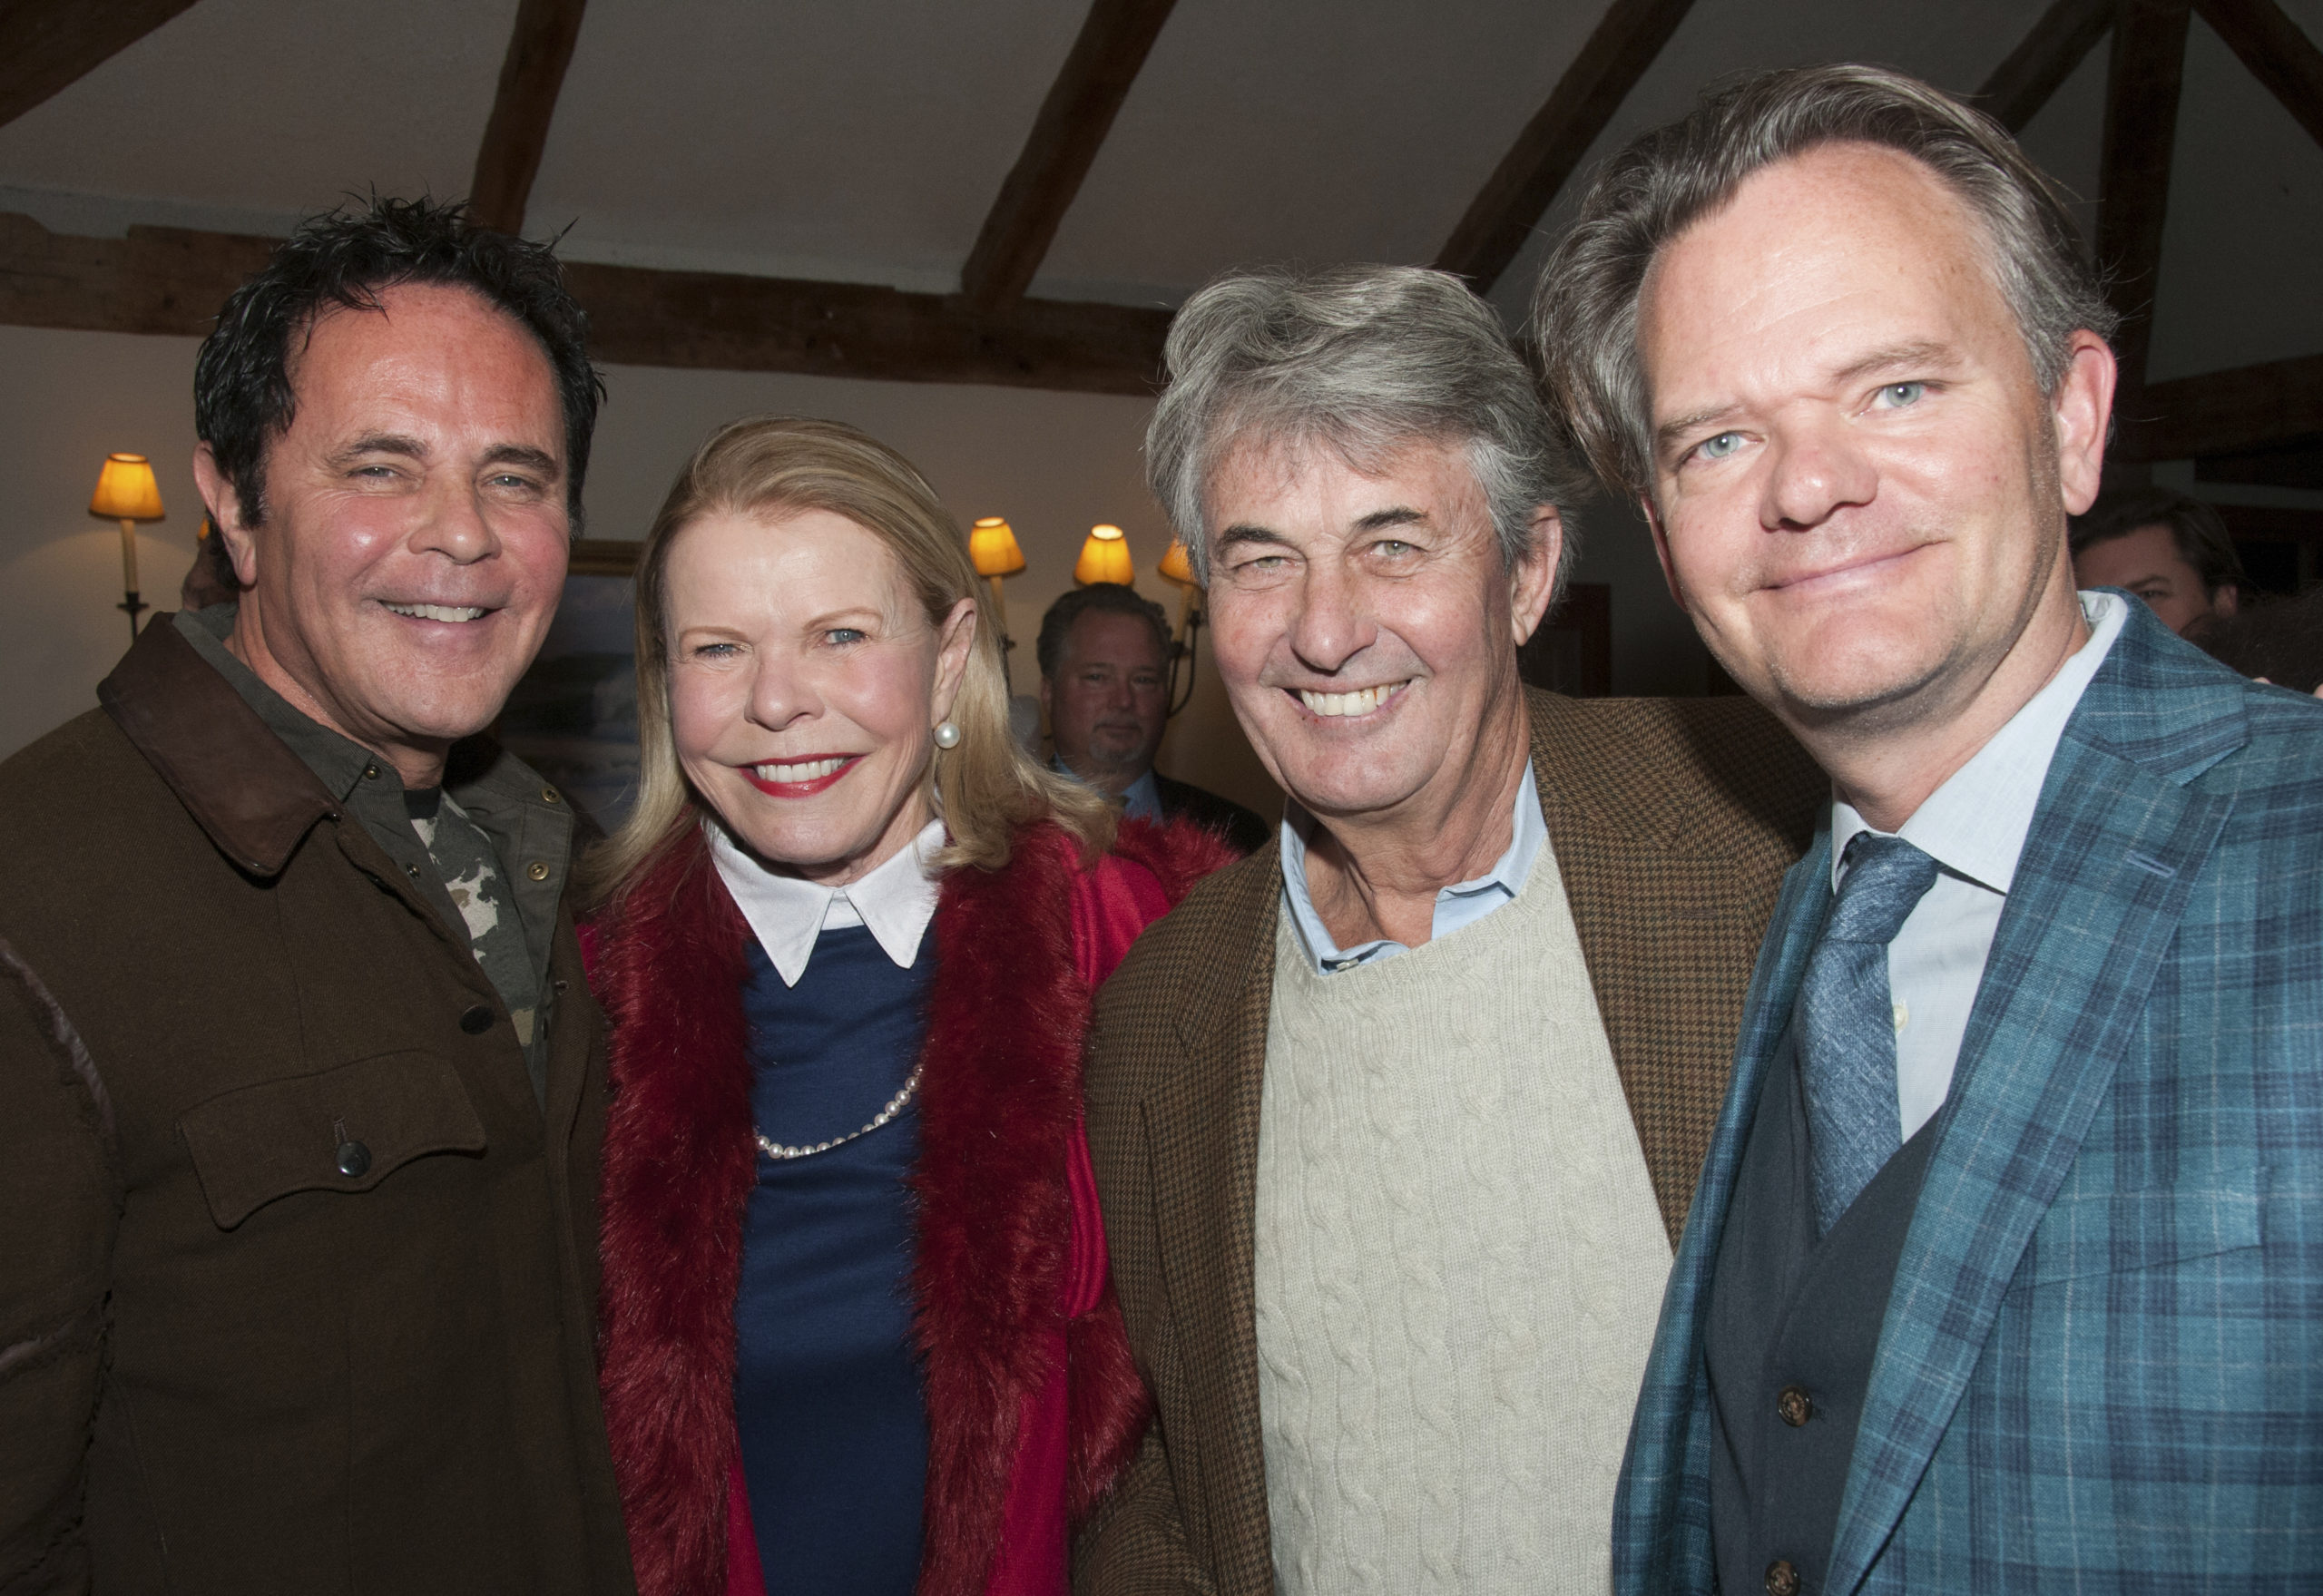 Tony Ingrao, Dale Ellen Leff, Michael Garsten and Nick Martin at  the kick-off cocktail party for the annaul East Hampton House & Garden Tour, now in its 35th year, to benefit the East Hampton Historical Society, on Friday evening at the Maidstone Club.   RICHARD LEWIN